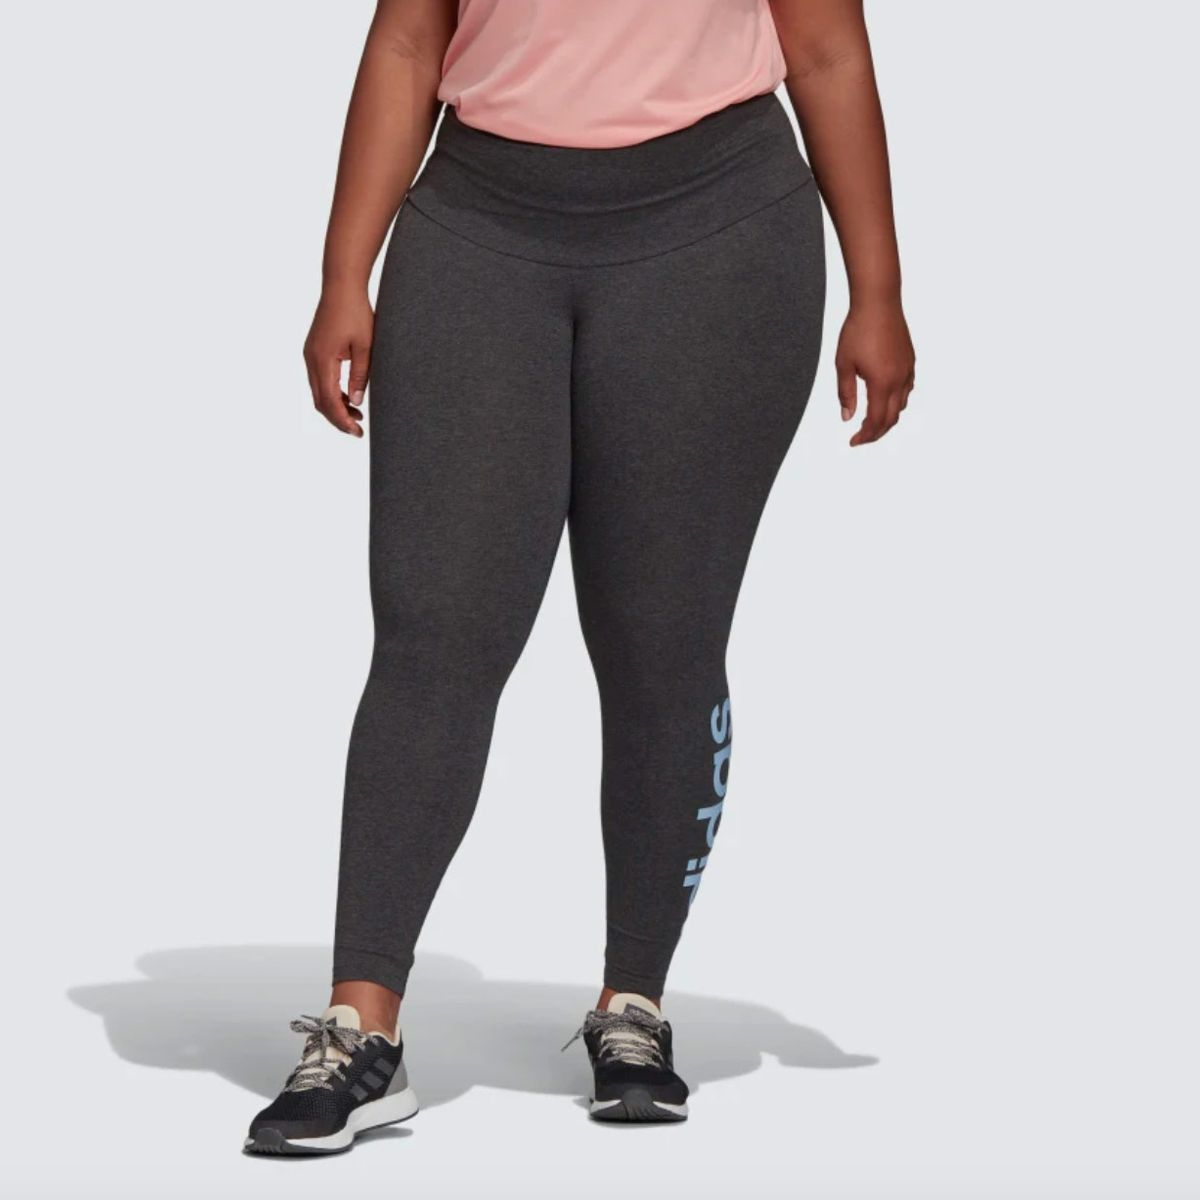 29 Best Plus Size Workout Clothes 2020 The Strategist New York Magazine